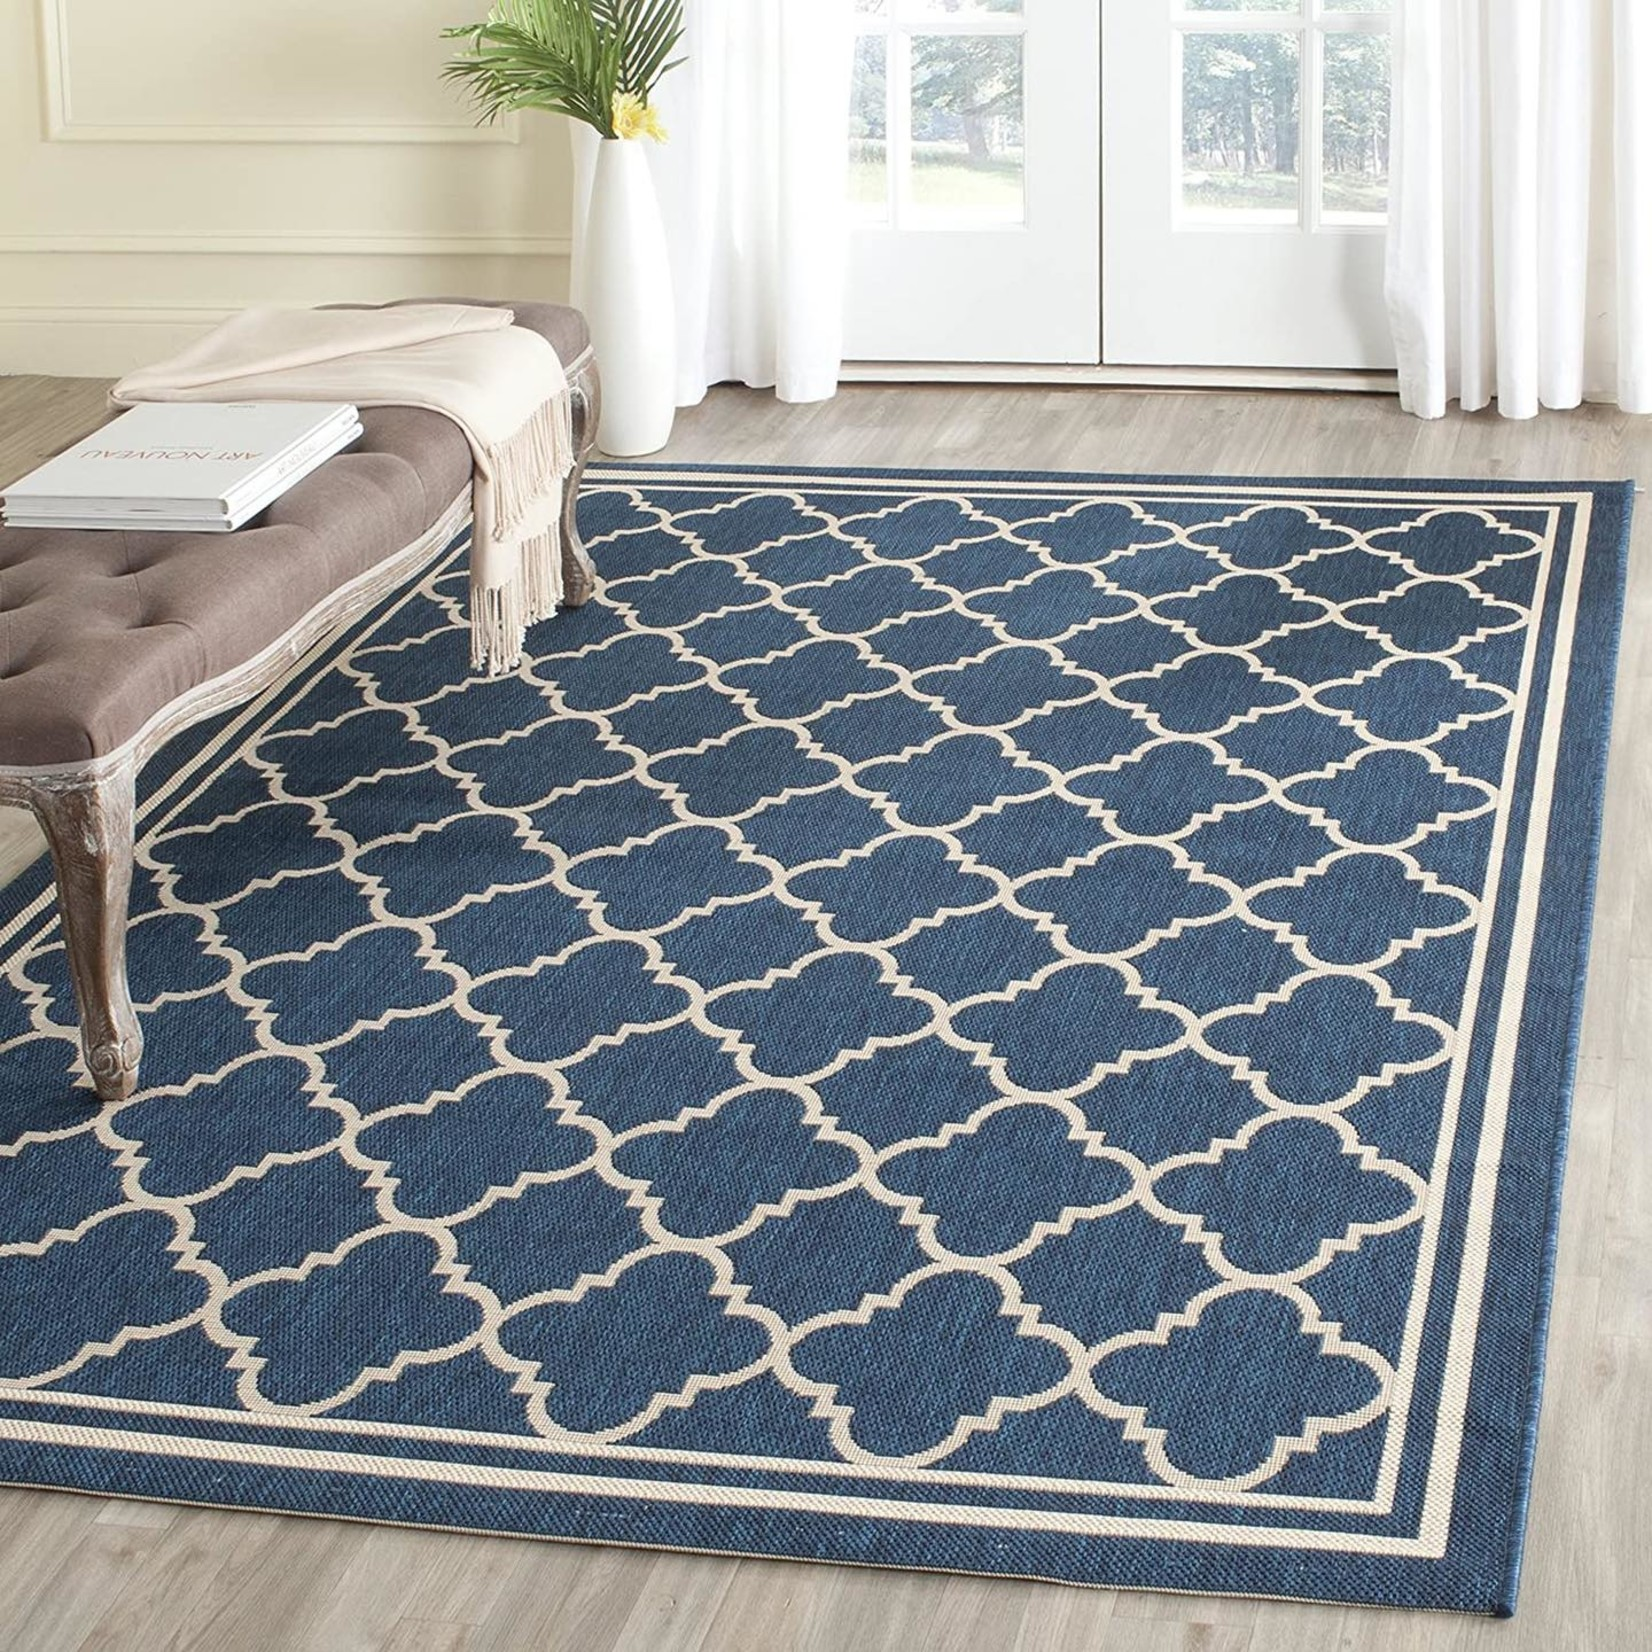 *8' x 10' Antnio Power Loom Navy Blue Rug